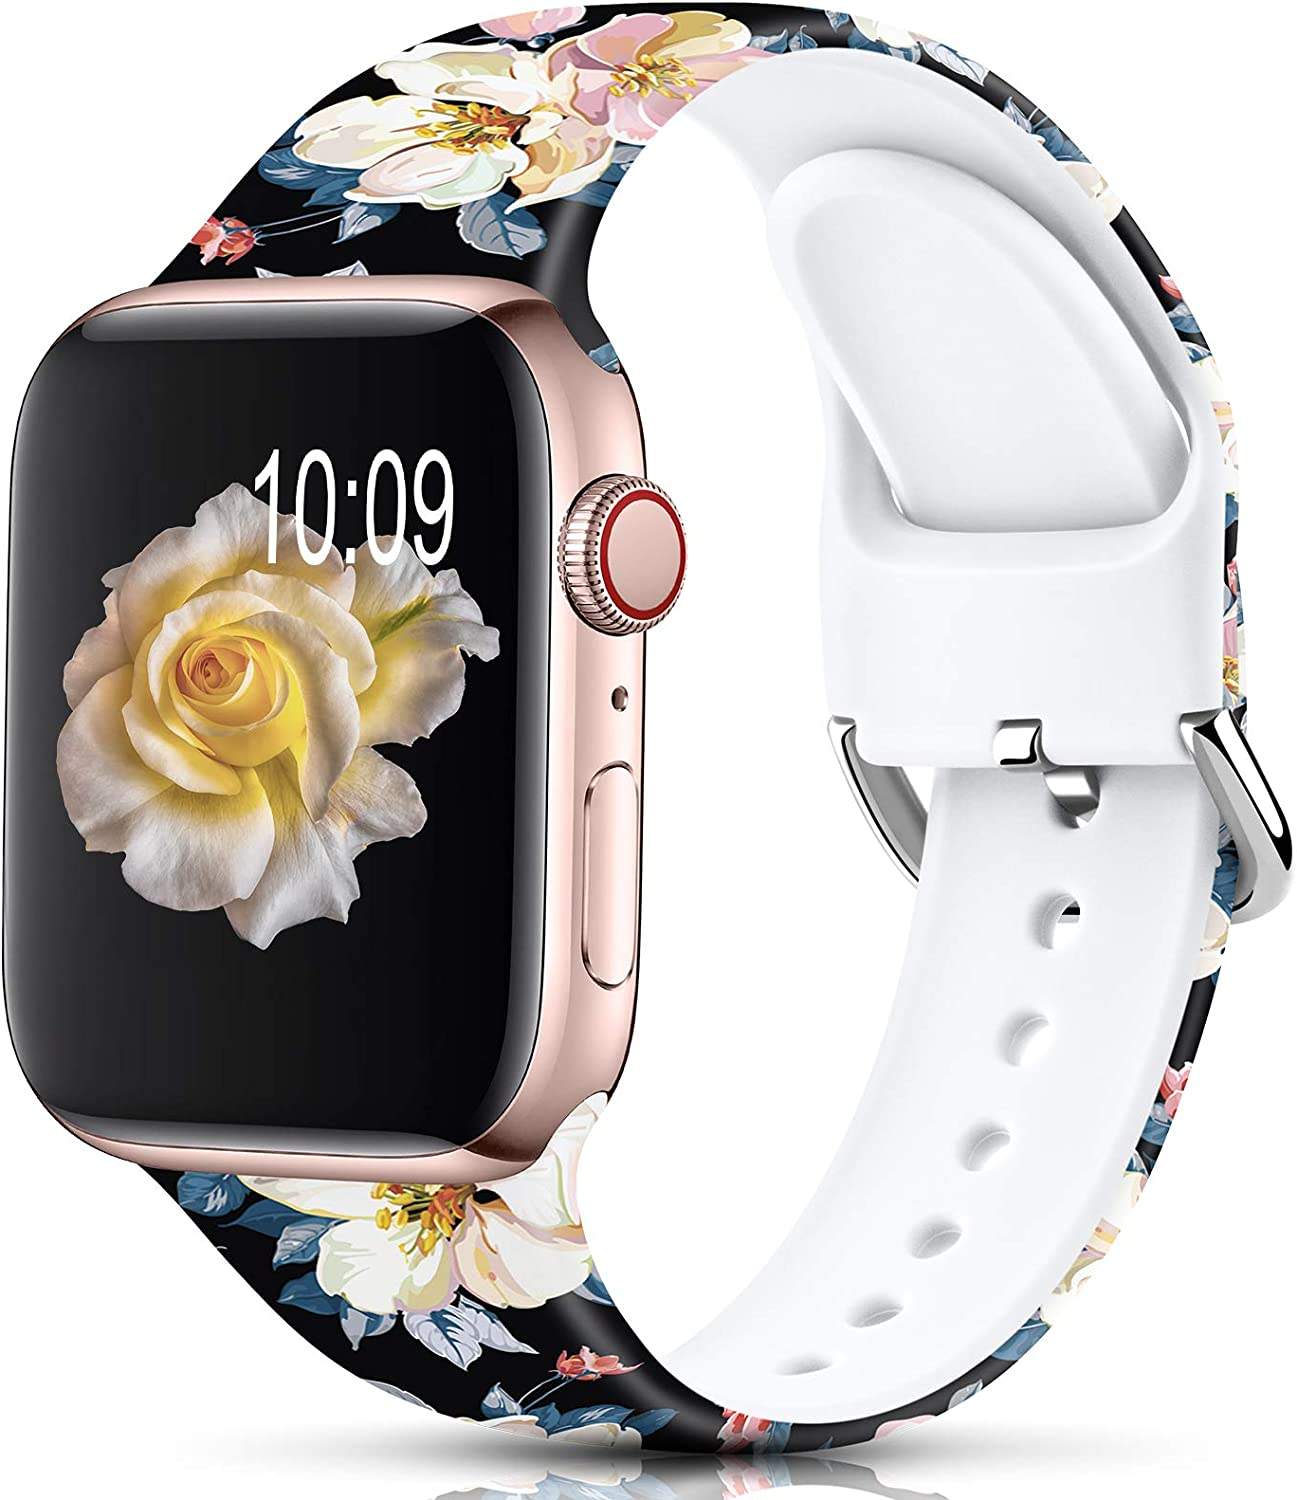 Sport Band Compatible with Apple Watch Bands 38mm 40mm 42mm 44mm for Women Men,Floral Silicone Printed Fadeless Pattern Replacement Strap Band for iWatch Series 3 6 5 4 2 1 SE,Camellia,38/40 mm S/M